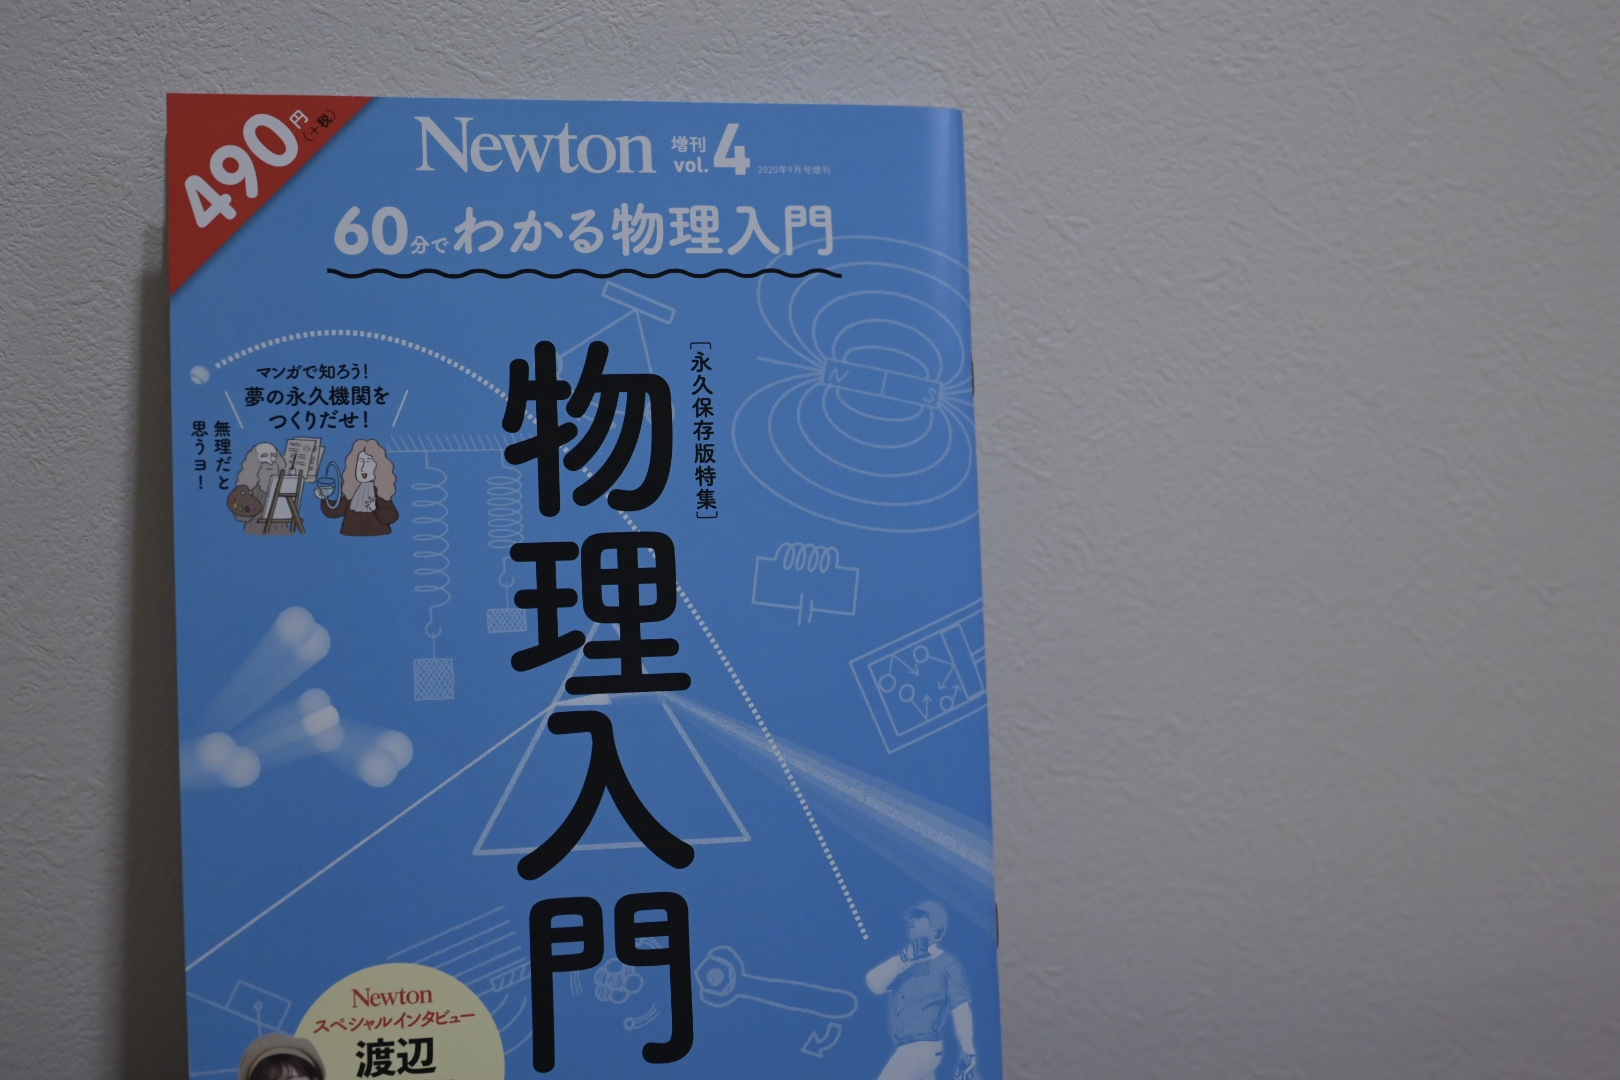 newton-2020-09-e-g-of-a-magazine-1